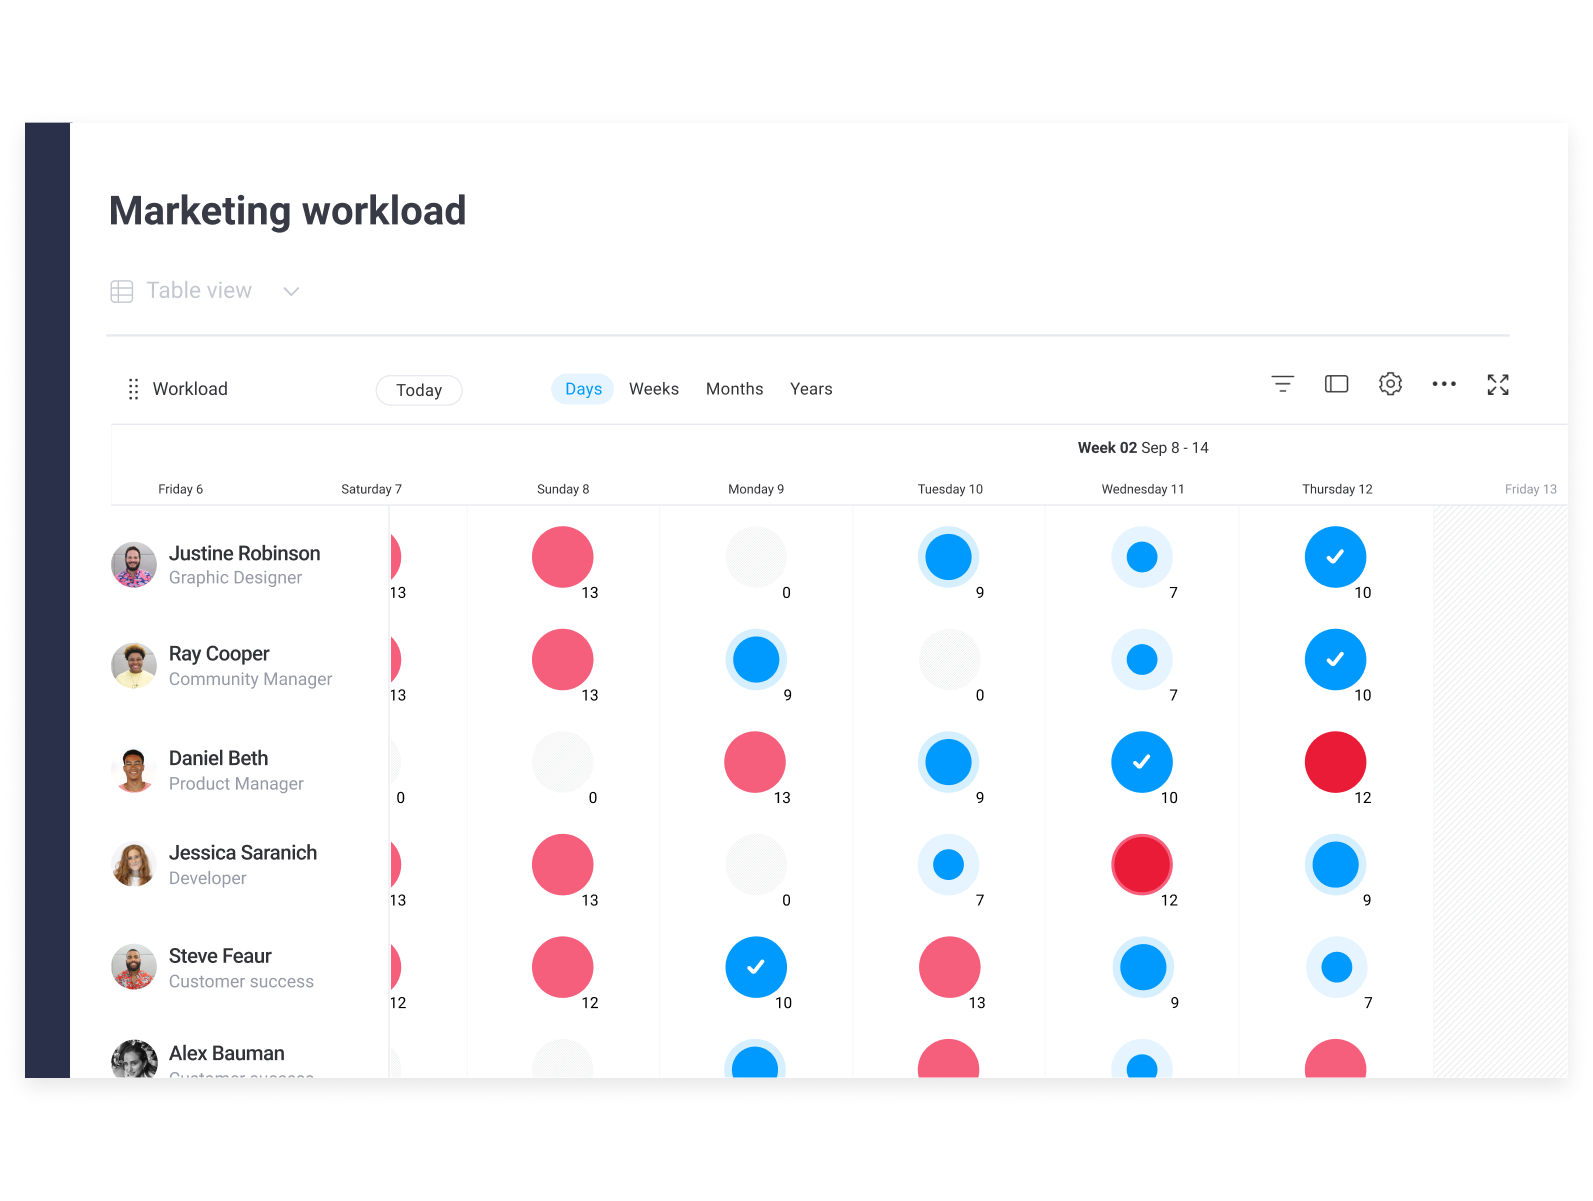 A new way to manage your team's Workload! Plan. Organize. Track. In one visual, collaborative space.